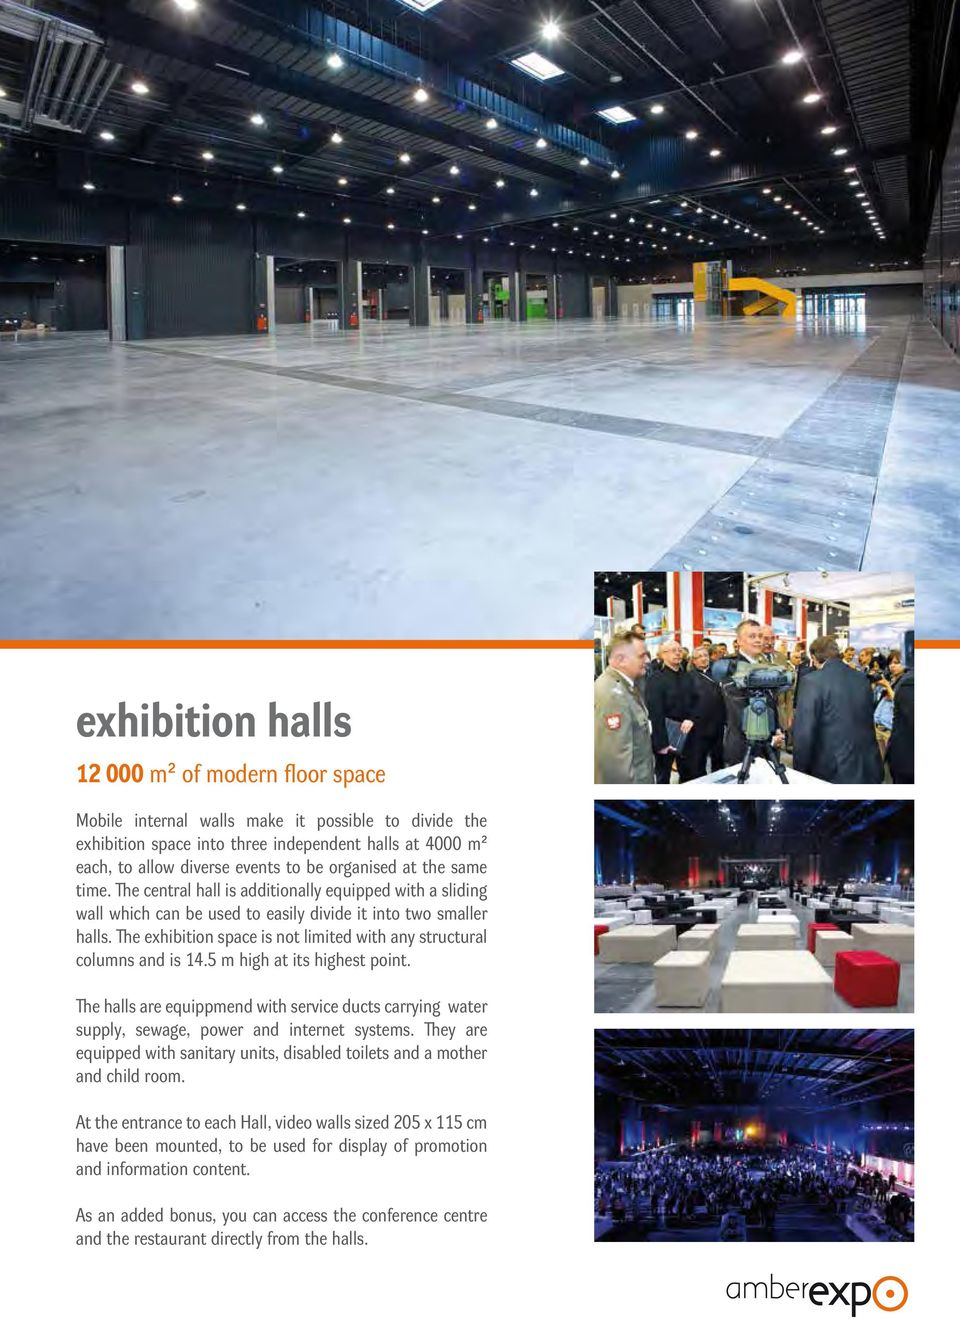 The exhibition space is not limited with any structural columns and is 14.5 m high at its highest point.